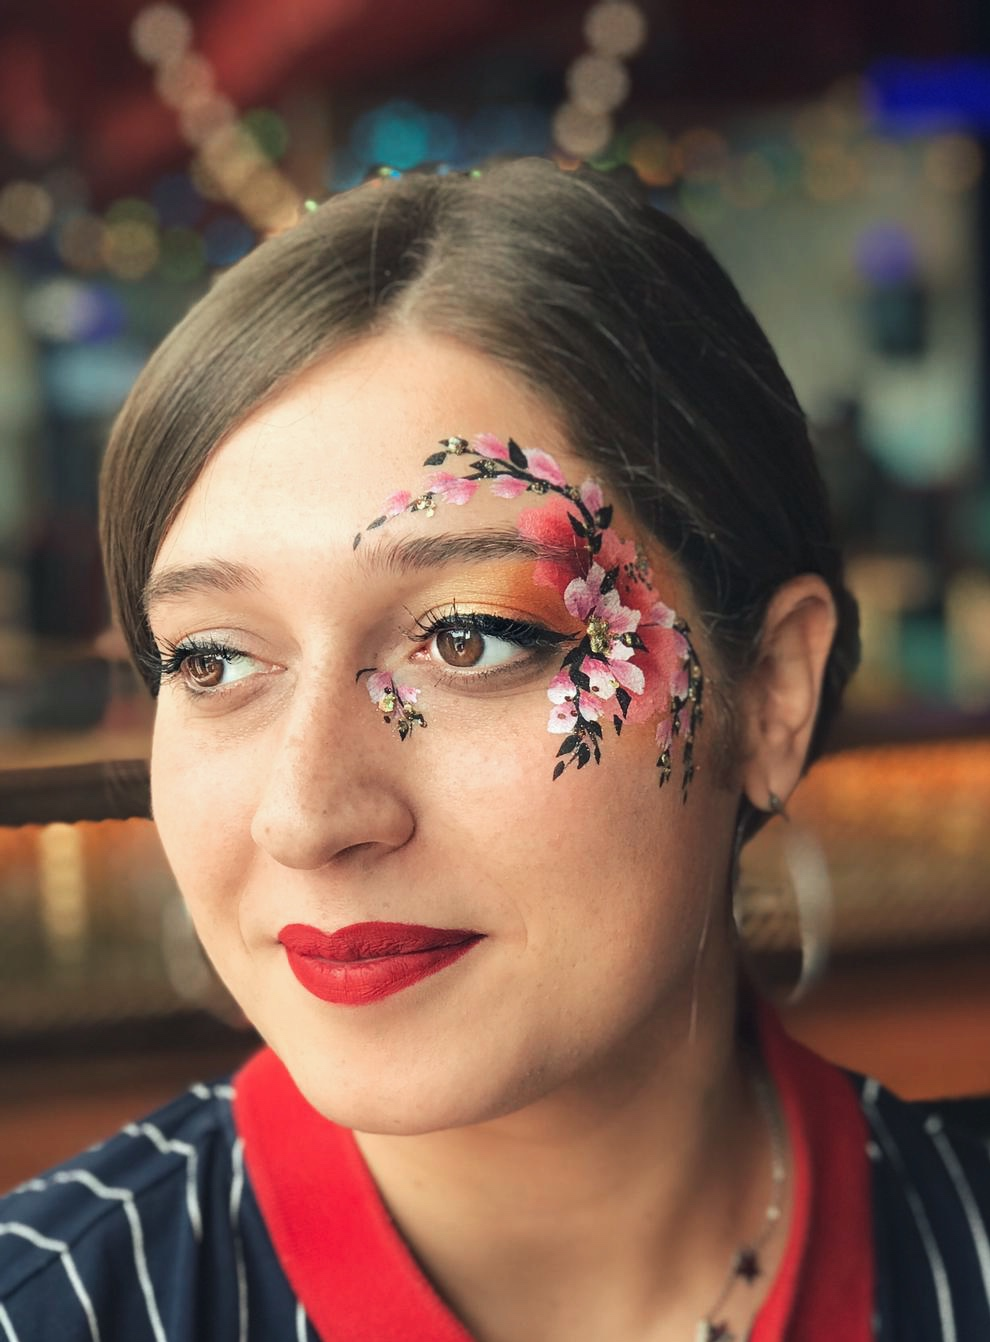 Adult festival face paint